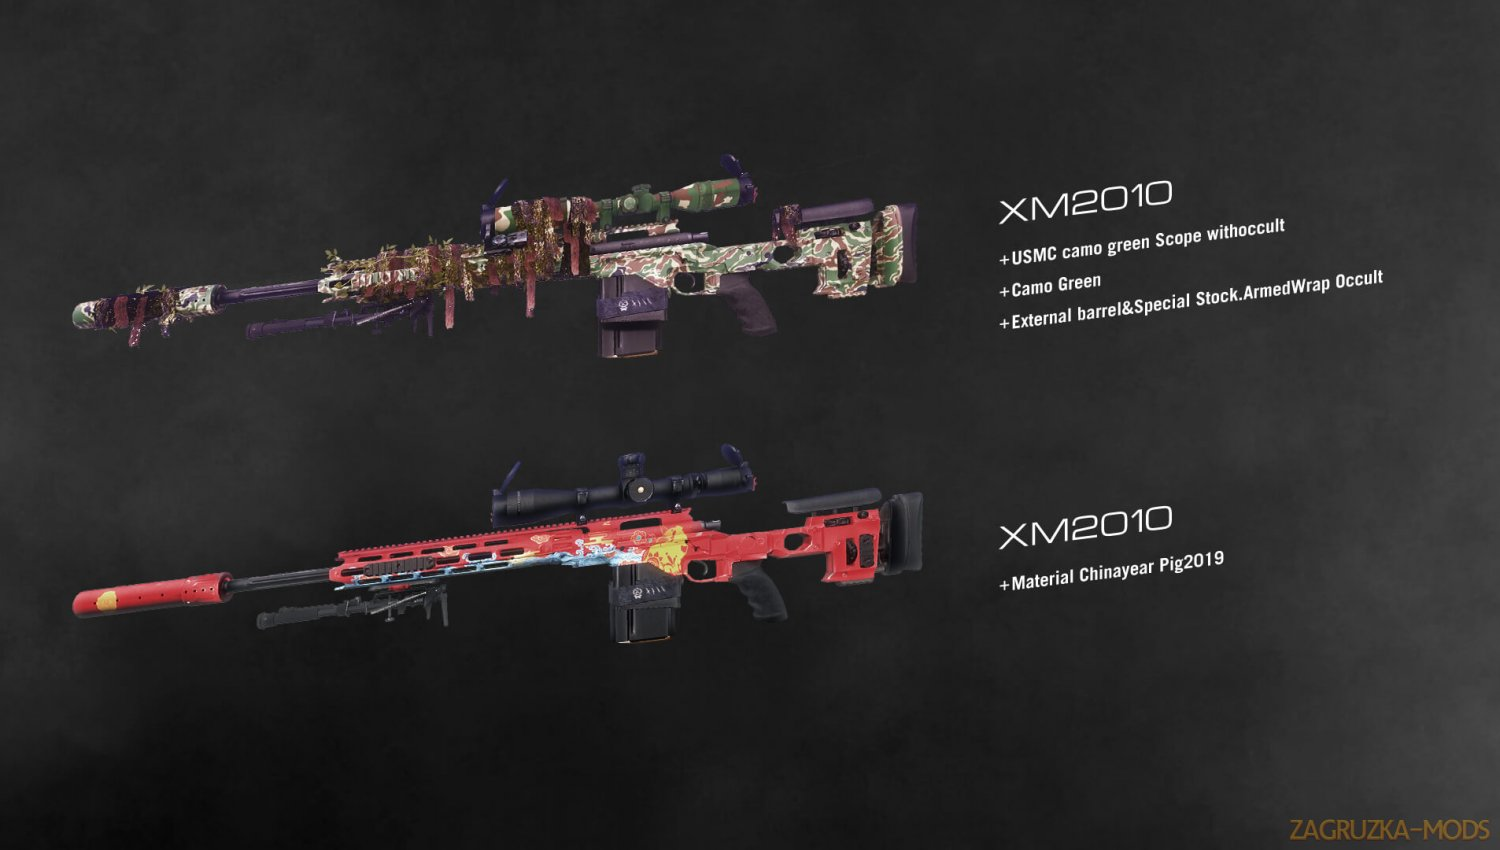 XM2010 Enhanced Sniper Rifle v1.3 for Fallout 4